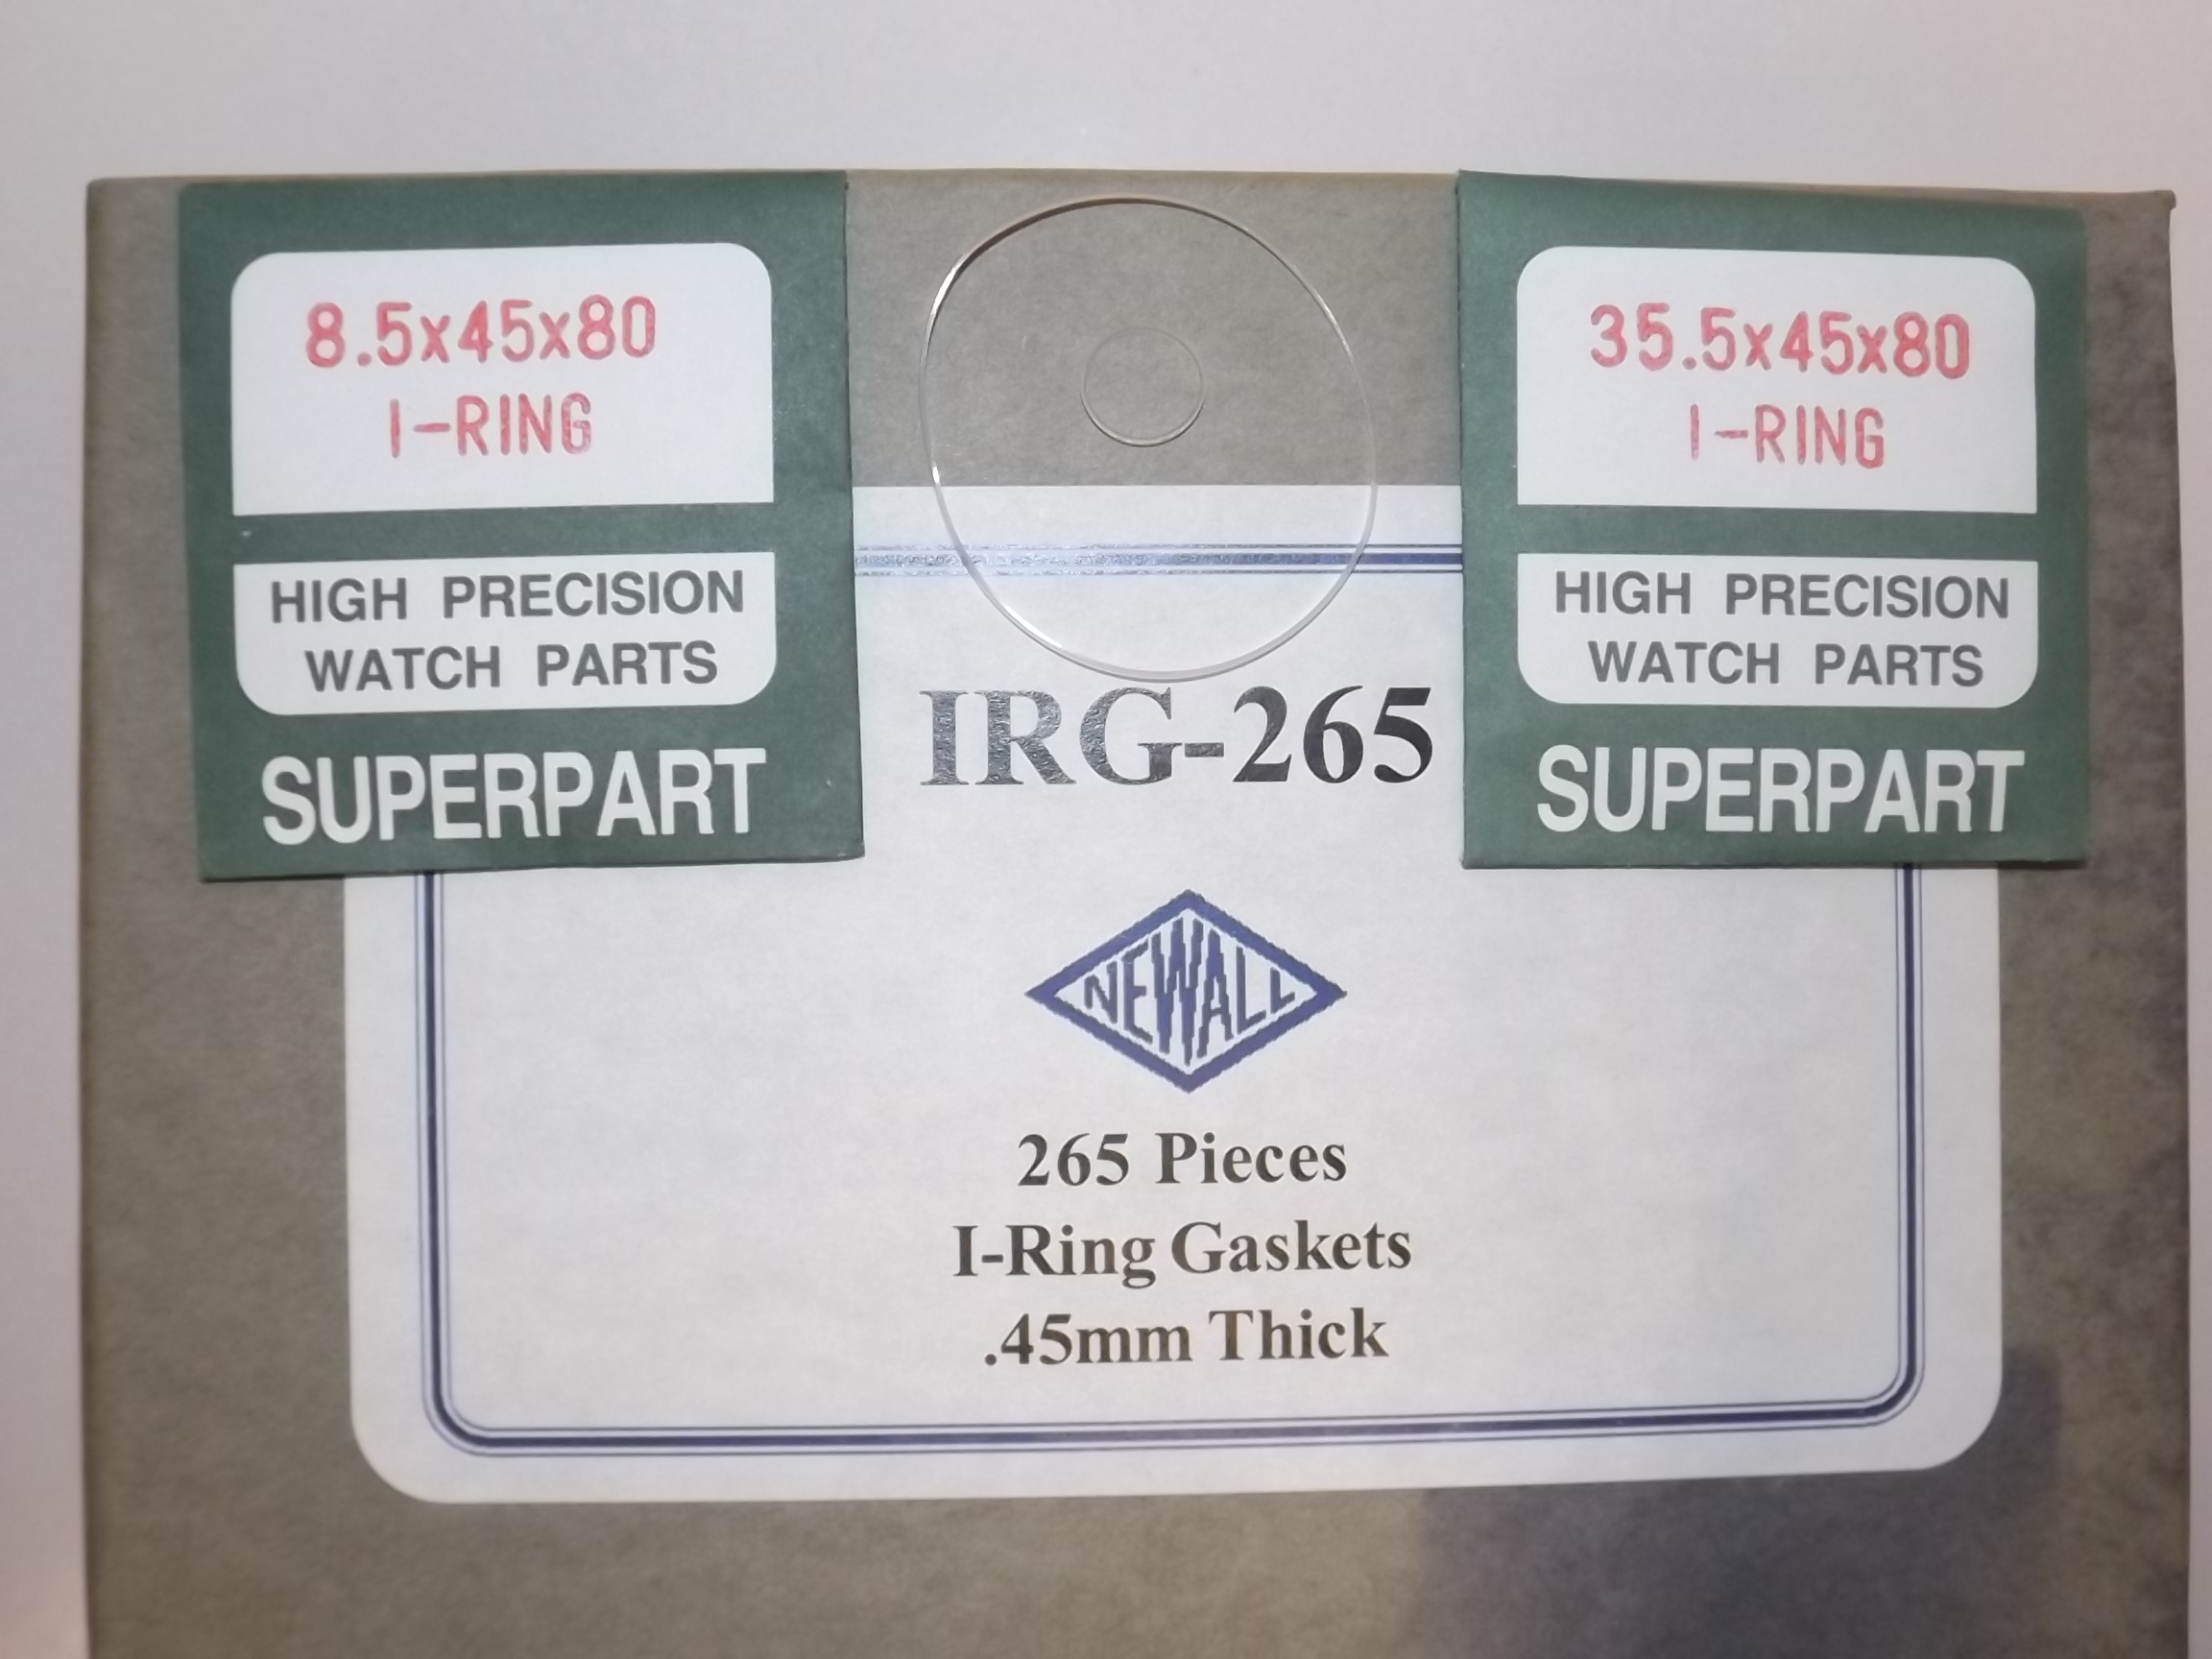 IRG265 New! I-RING Crystal Gaskets Assortment--53 sizes, 265 Pieces-Newall